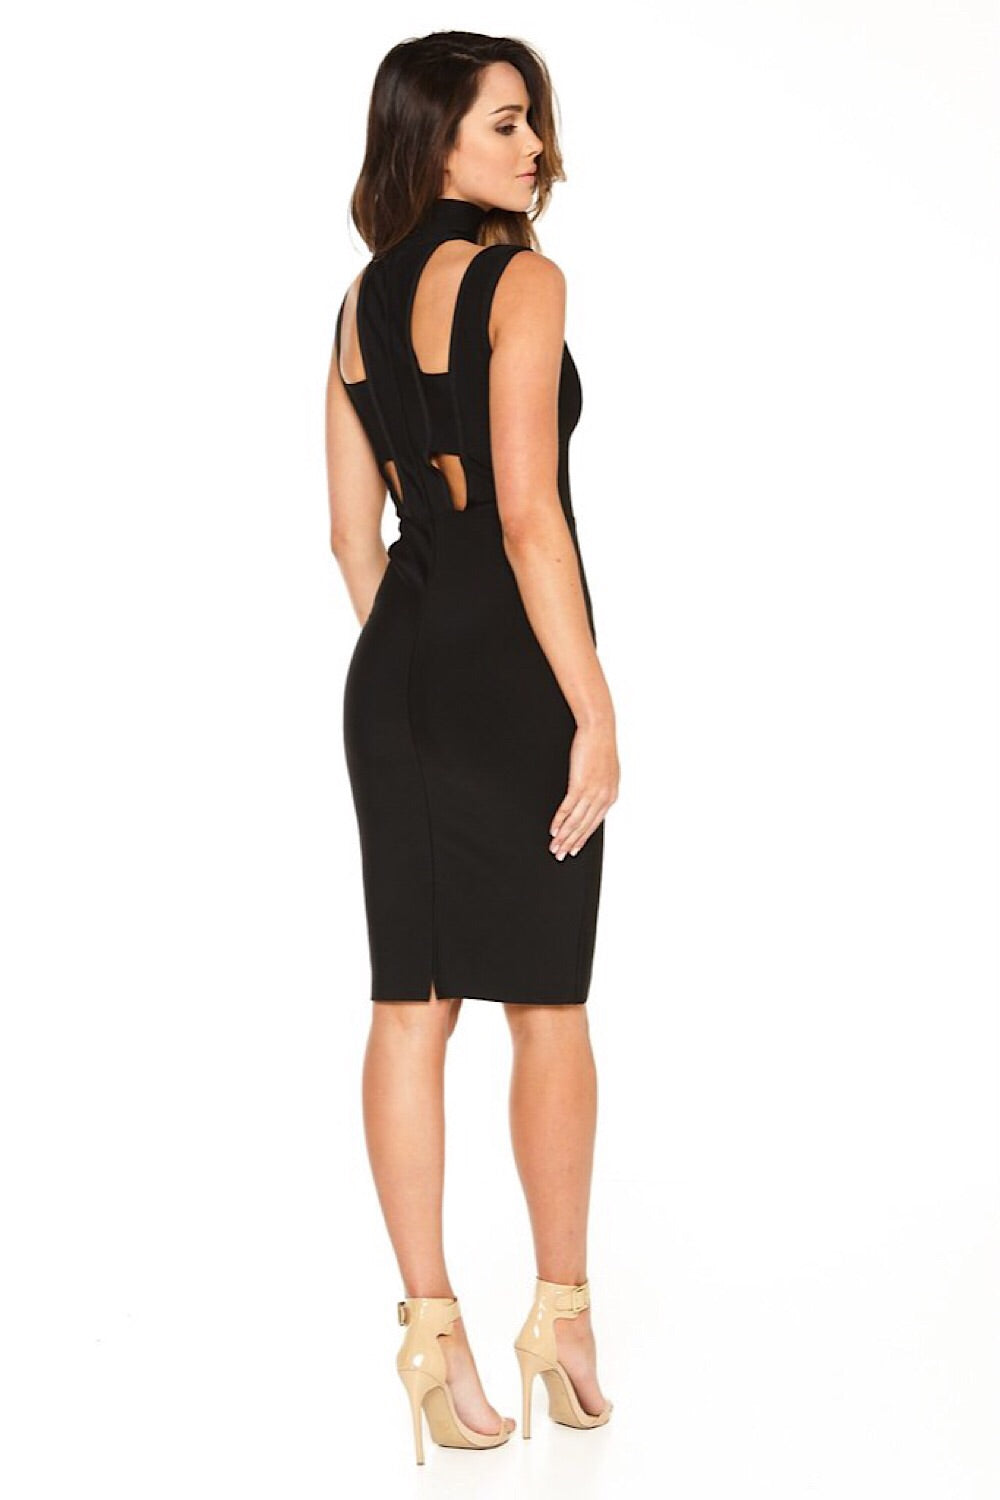 Starstruck Black Bandage Dress